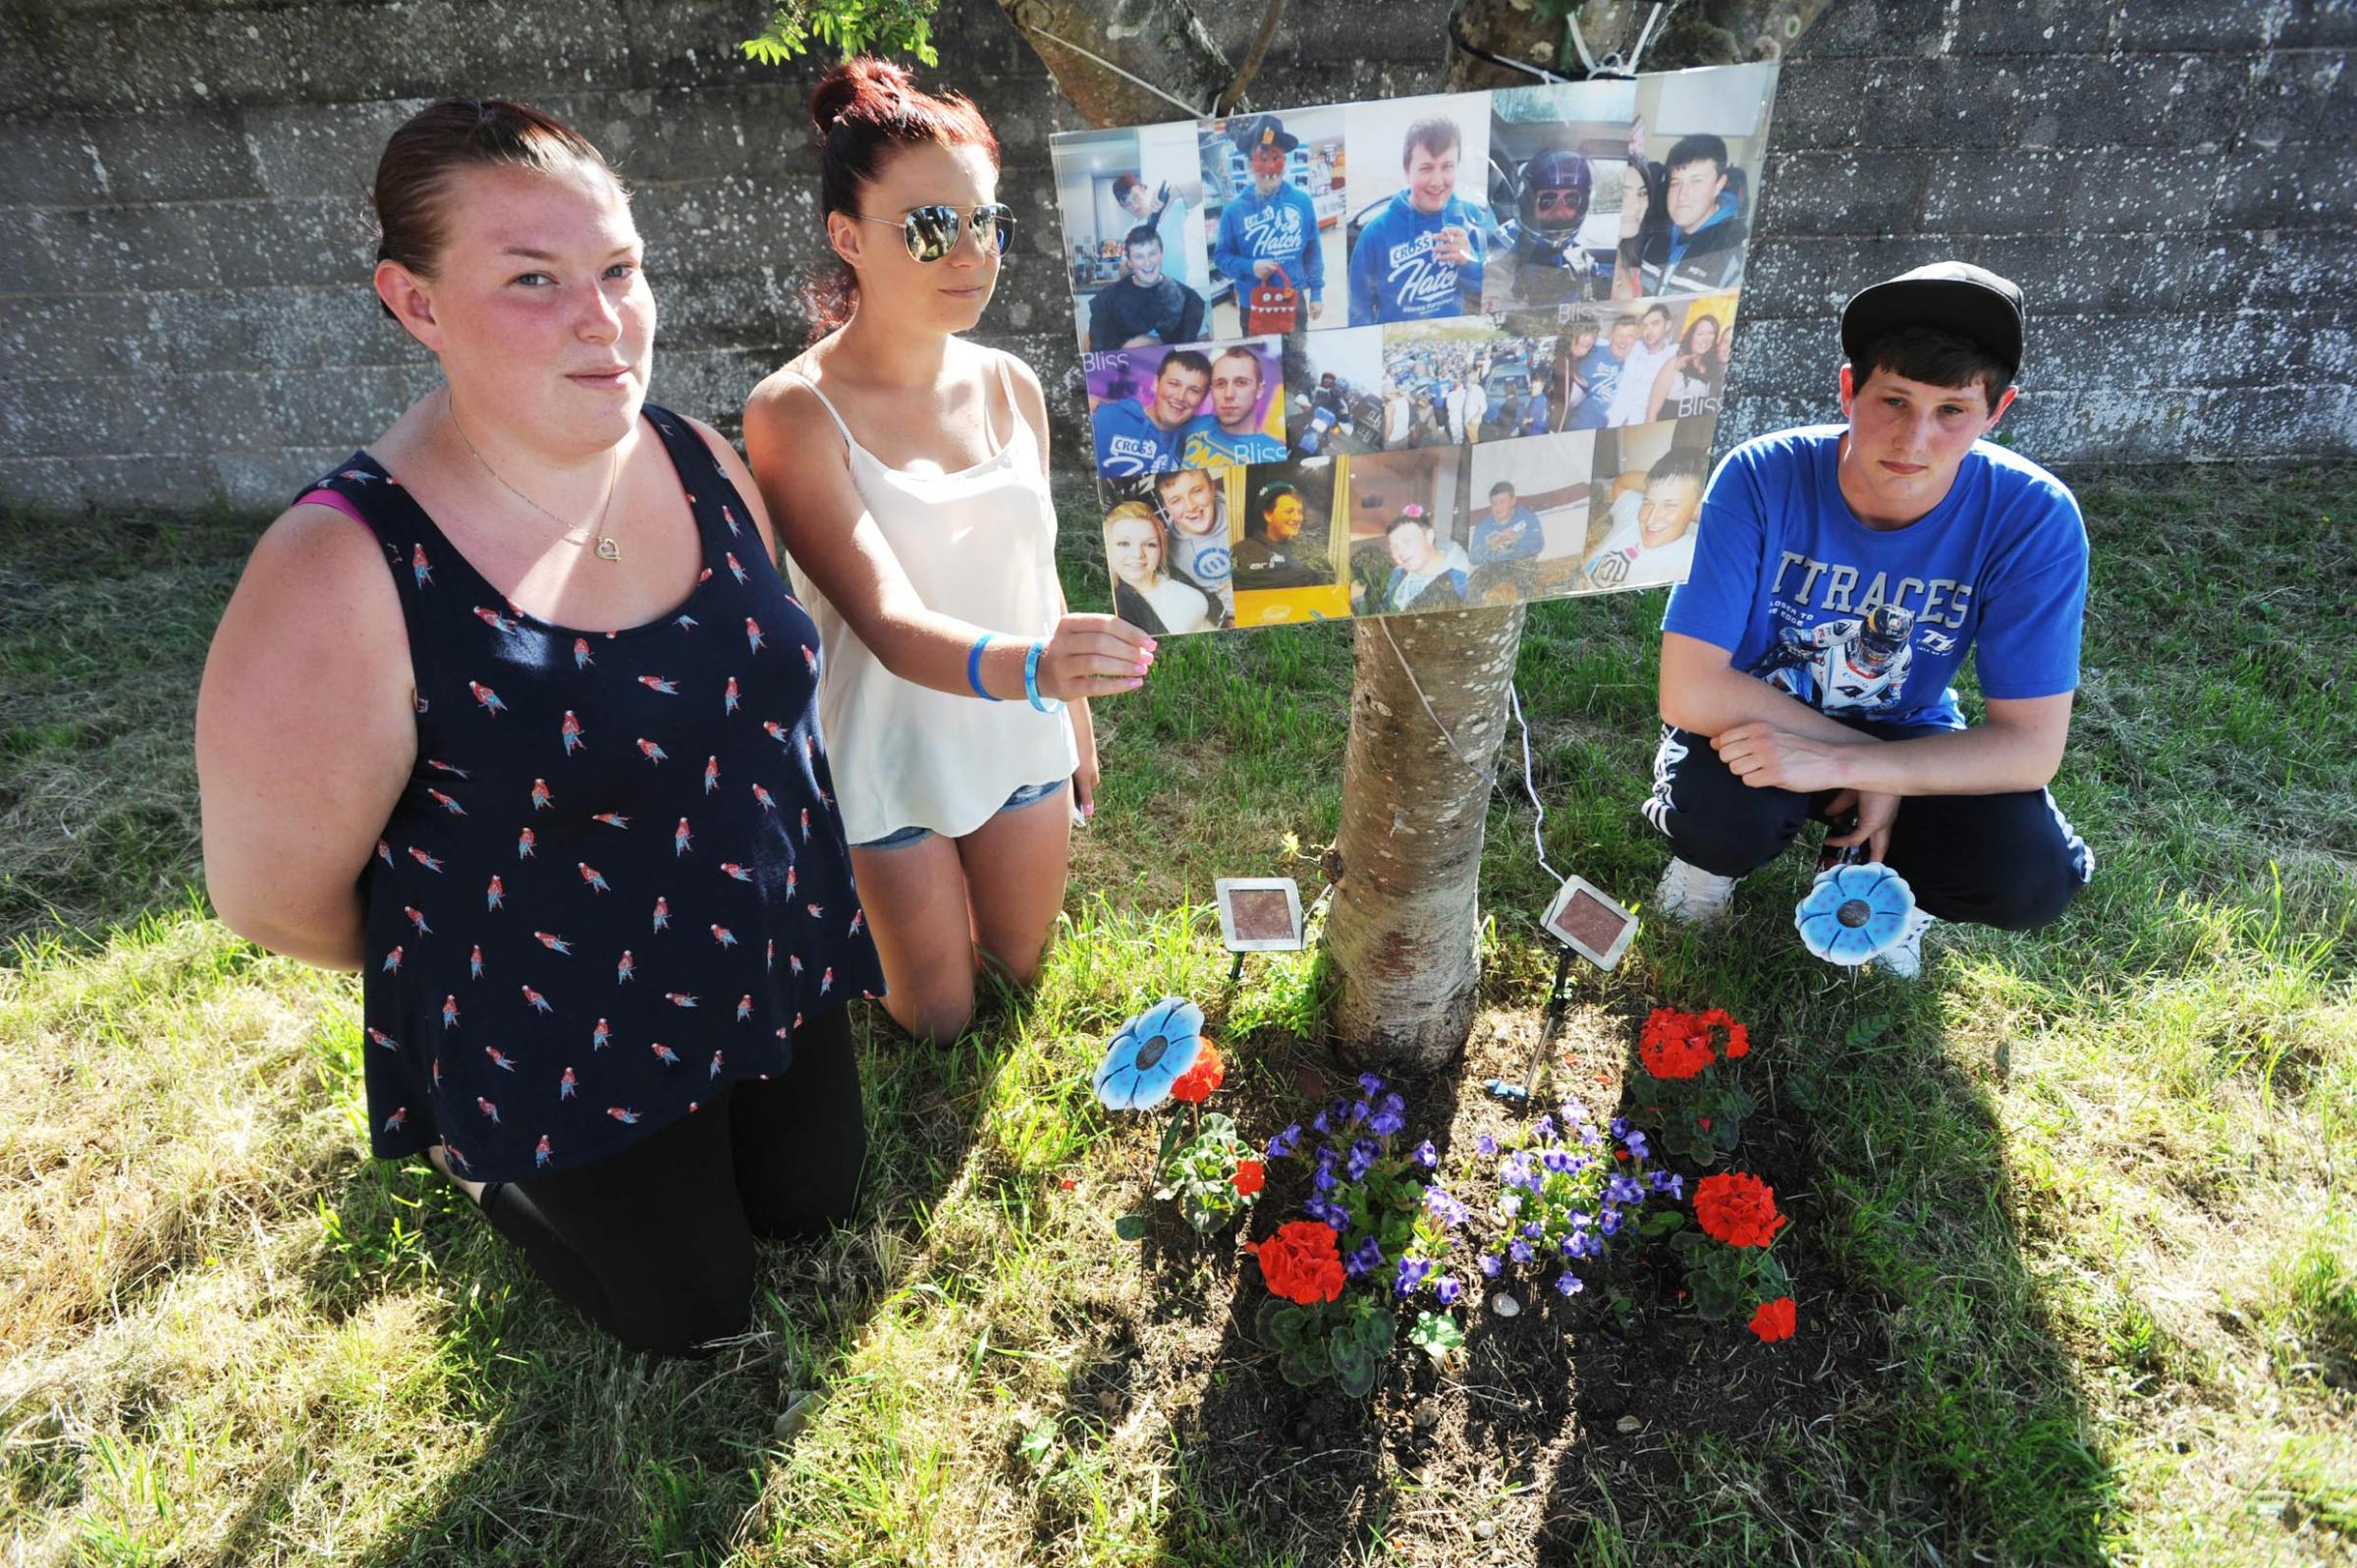 Jamie Fortune family and friends distraught at memorial thefts in Taunton